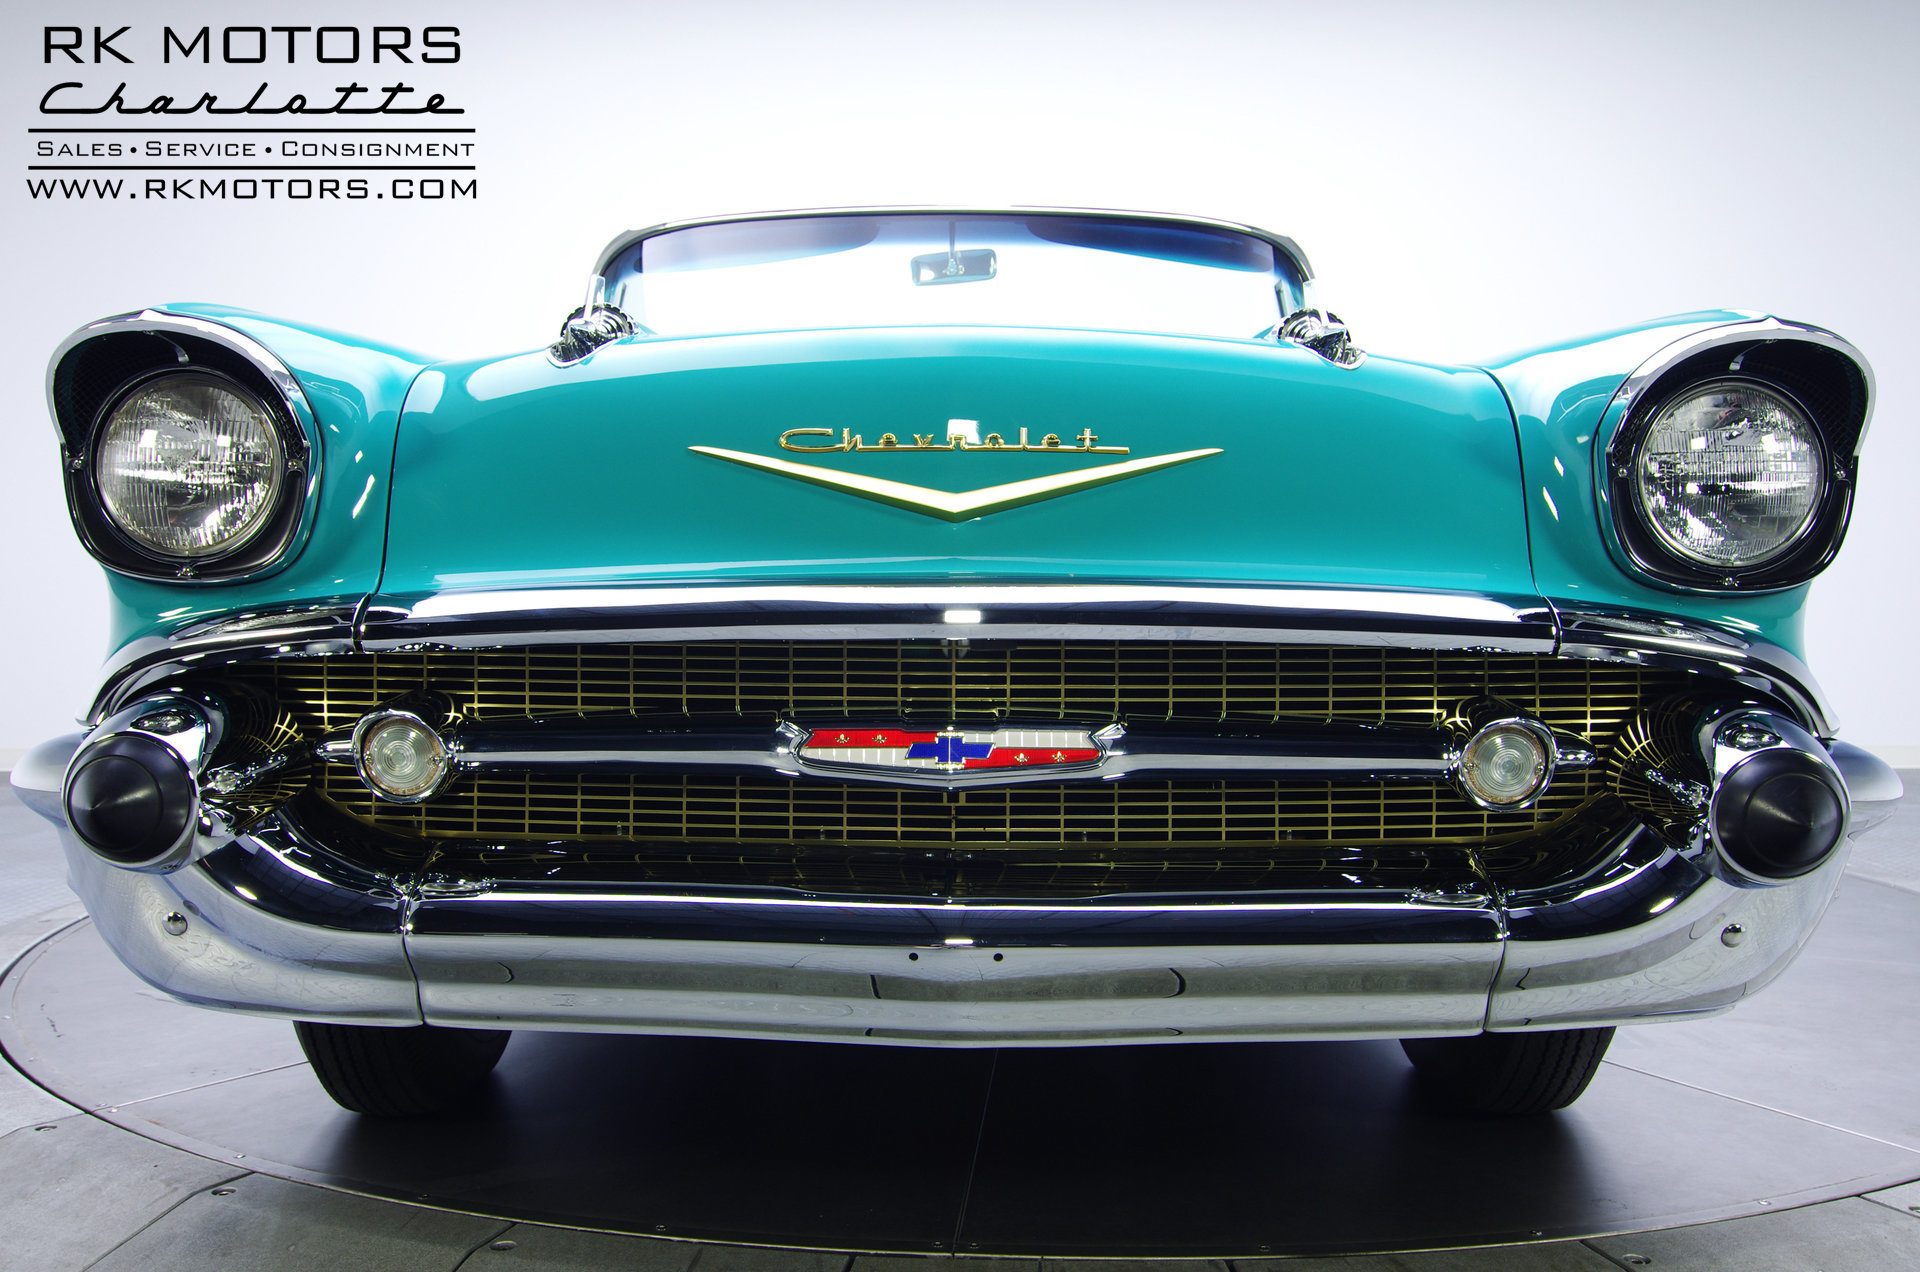 132499 1957 Chevrolet Bel Air Rk Motors Classic And Performance 1966 Chevy For Sale